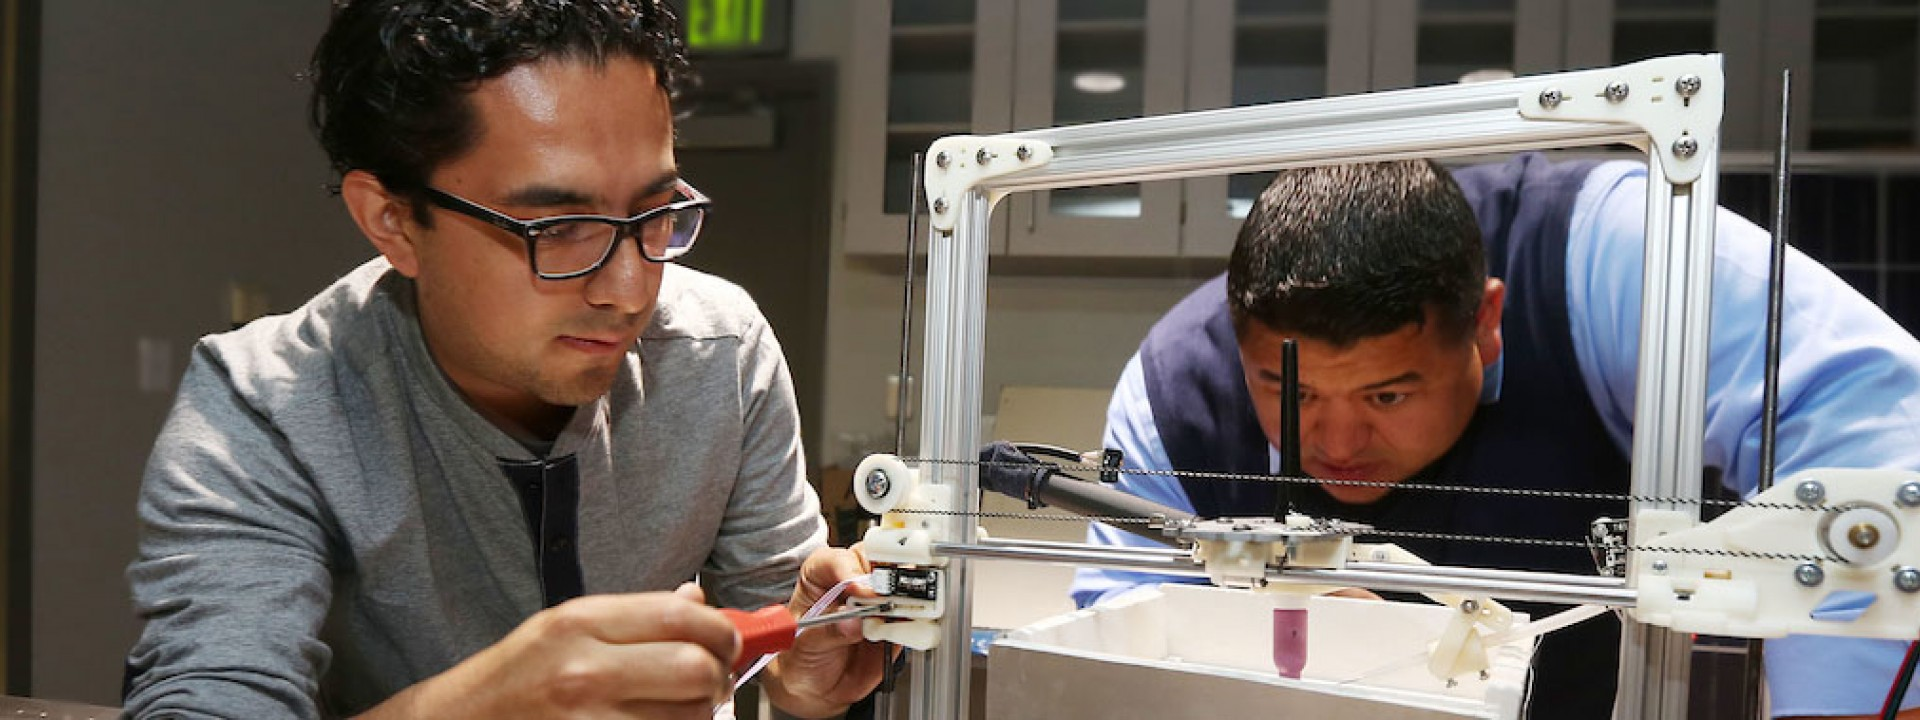 Image of two engineering students looking at a metal frame device intently.